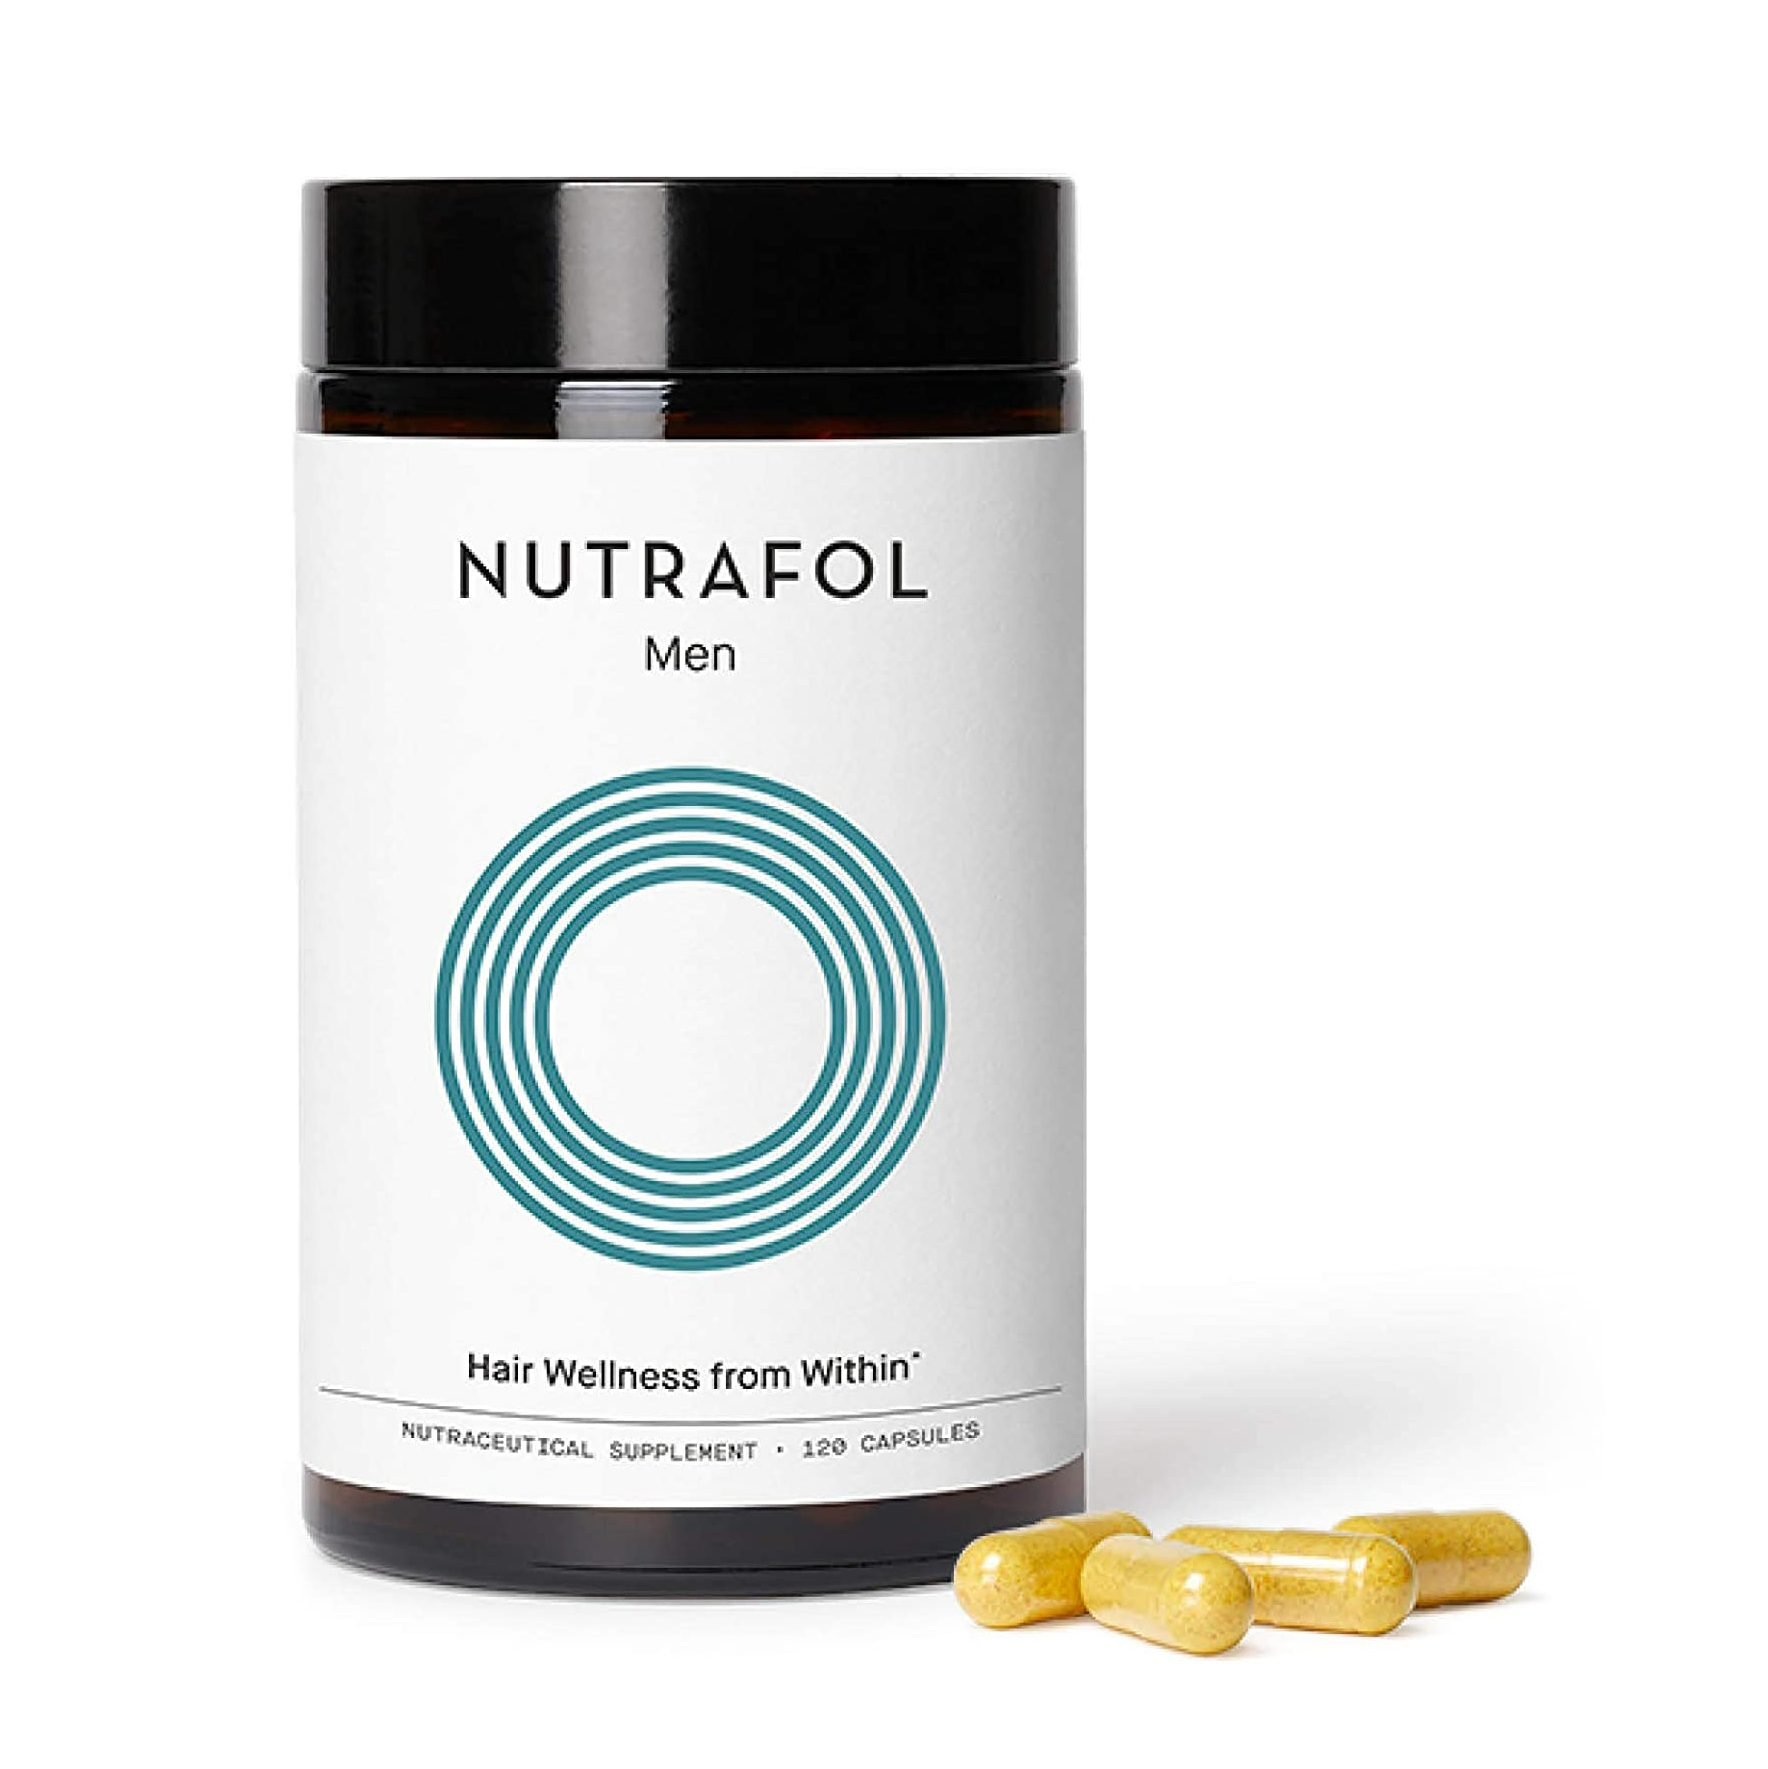 Nutrafol Hair Growth Supplement Fathers day gift